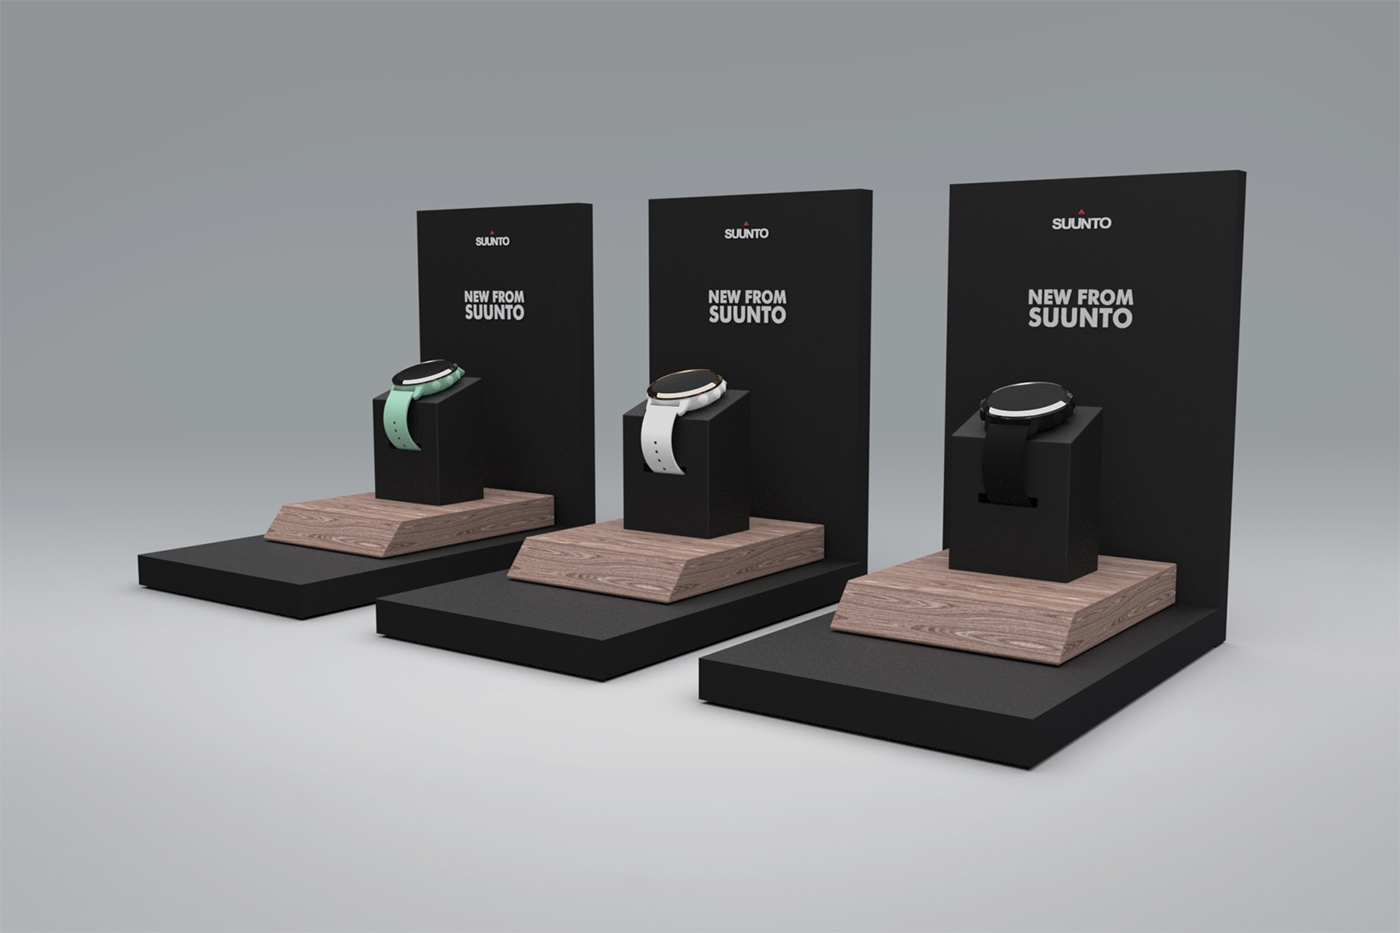 Suunto retail display design